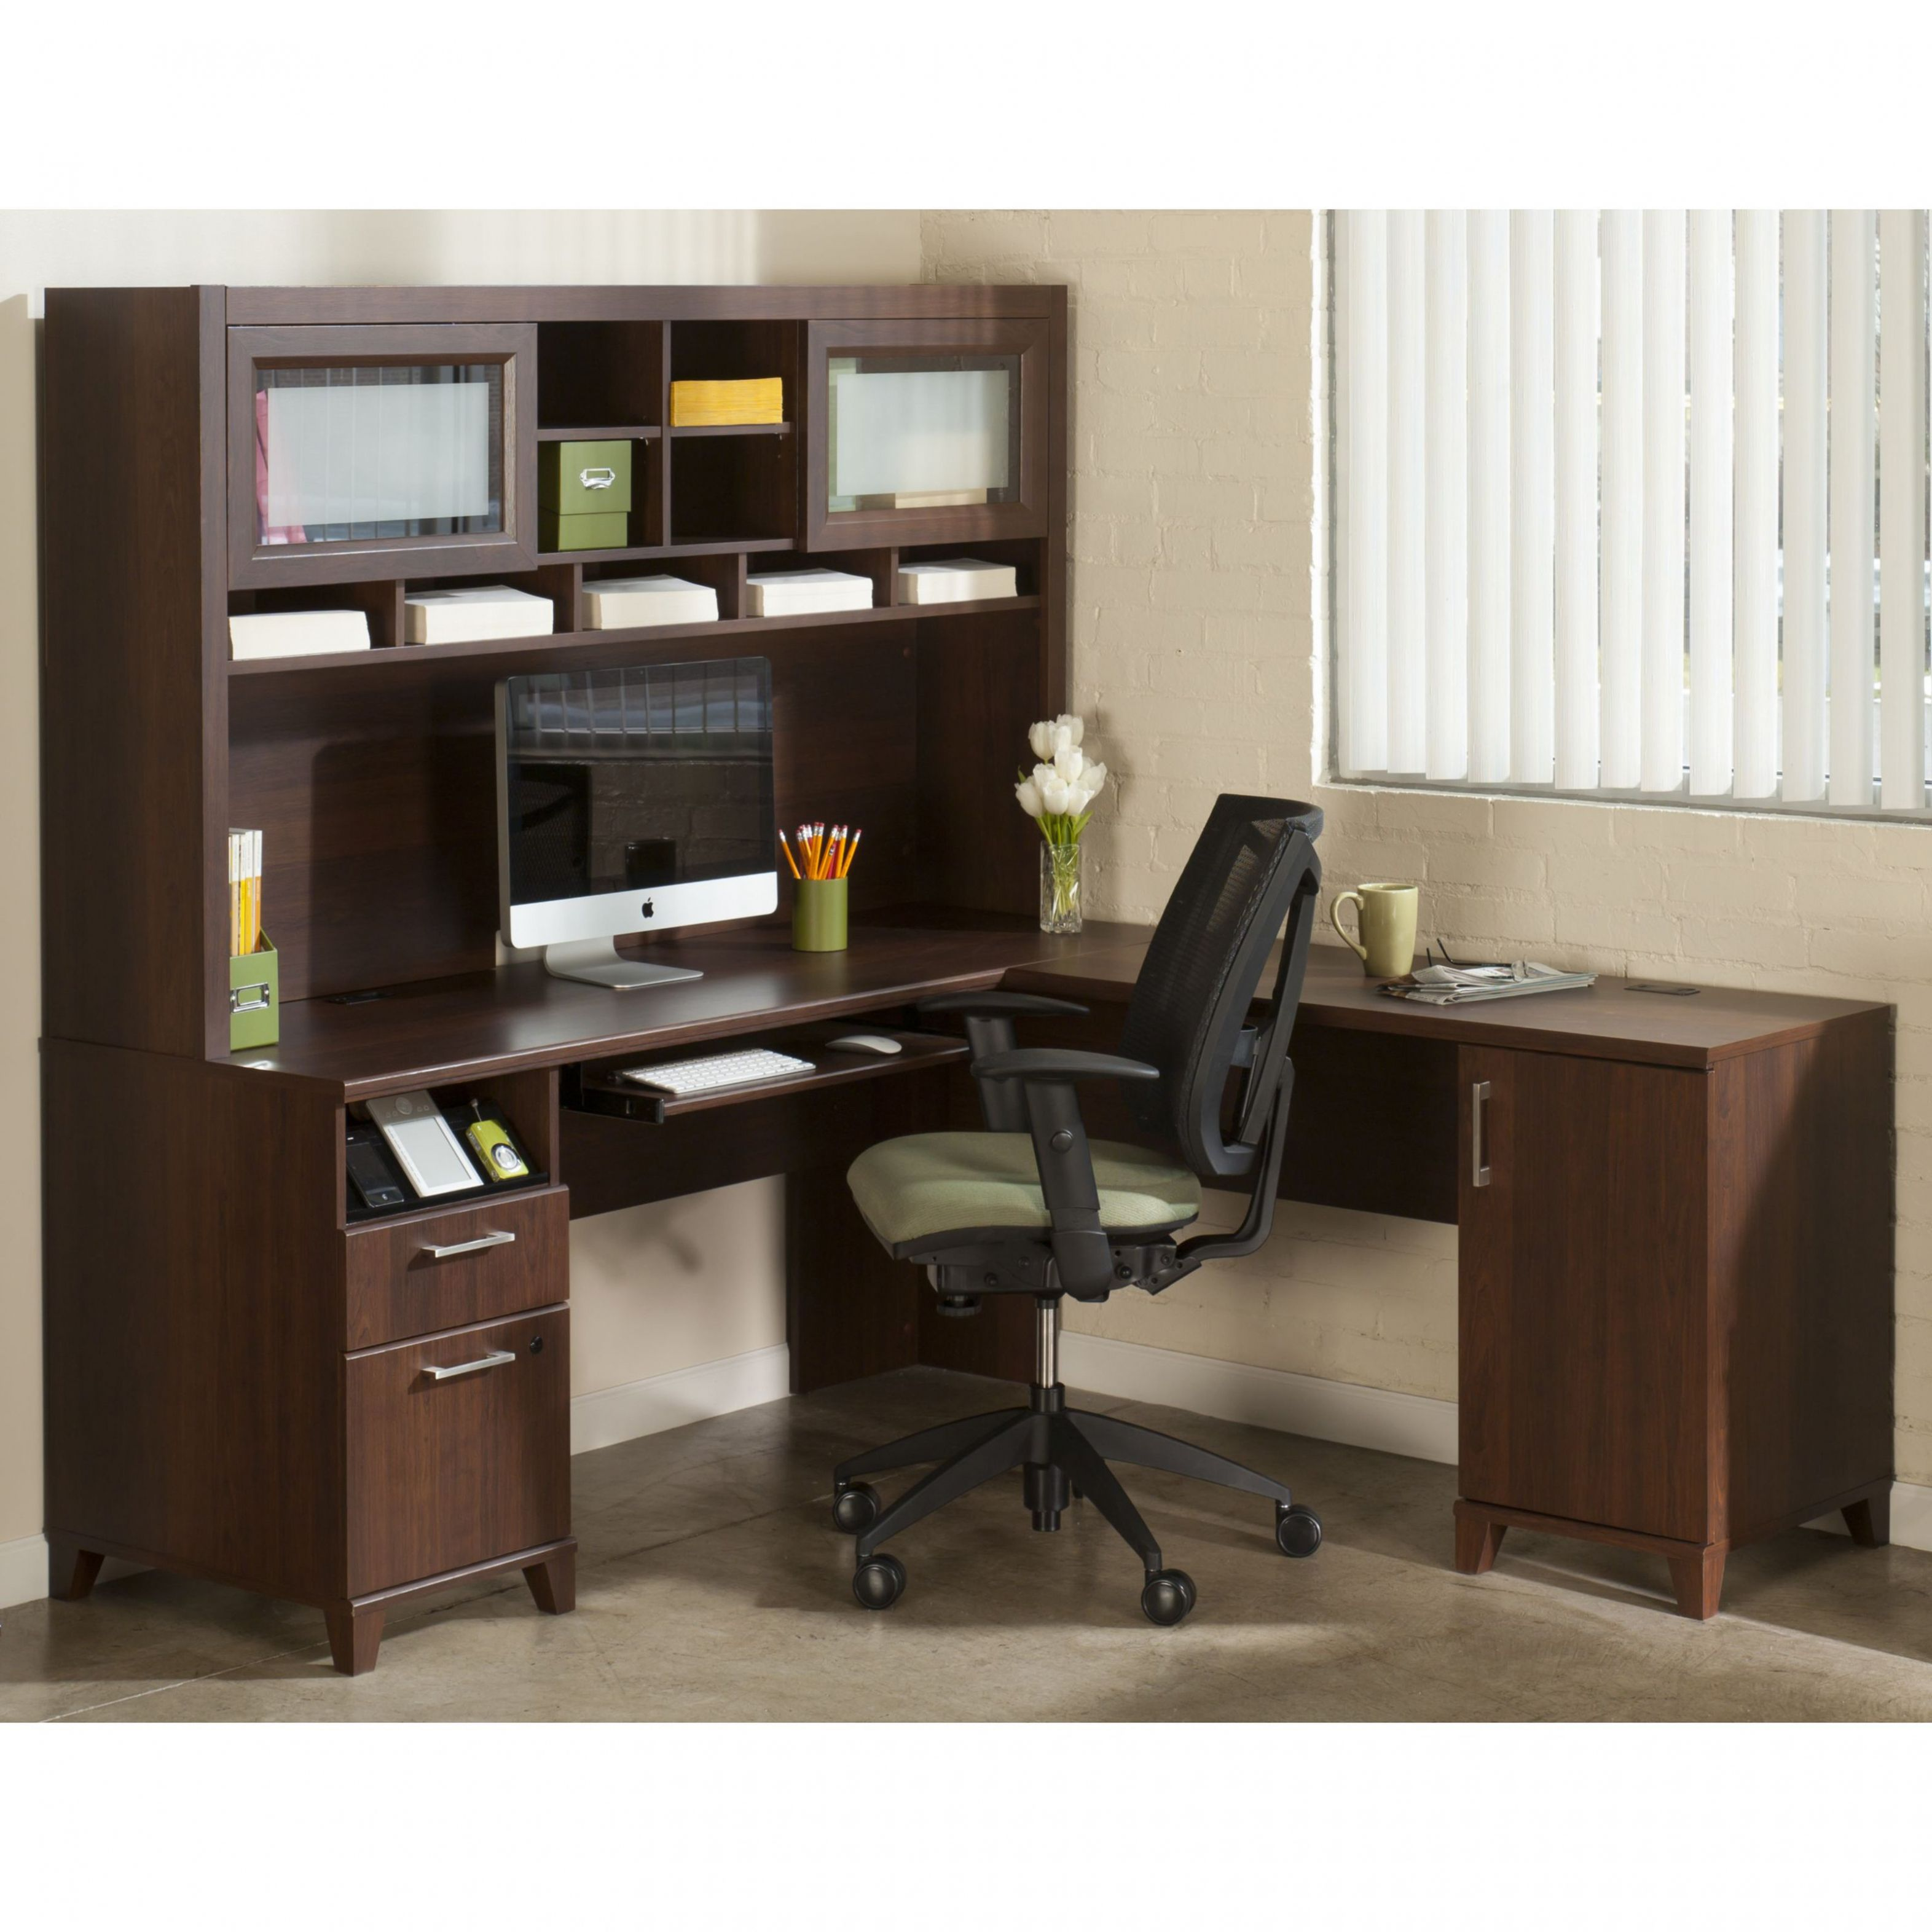 99+ Cheap Corner Desks for Small Spaces Used Home Office